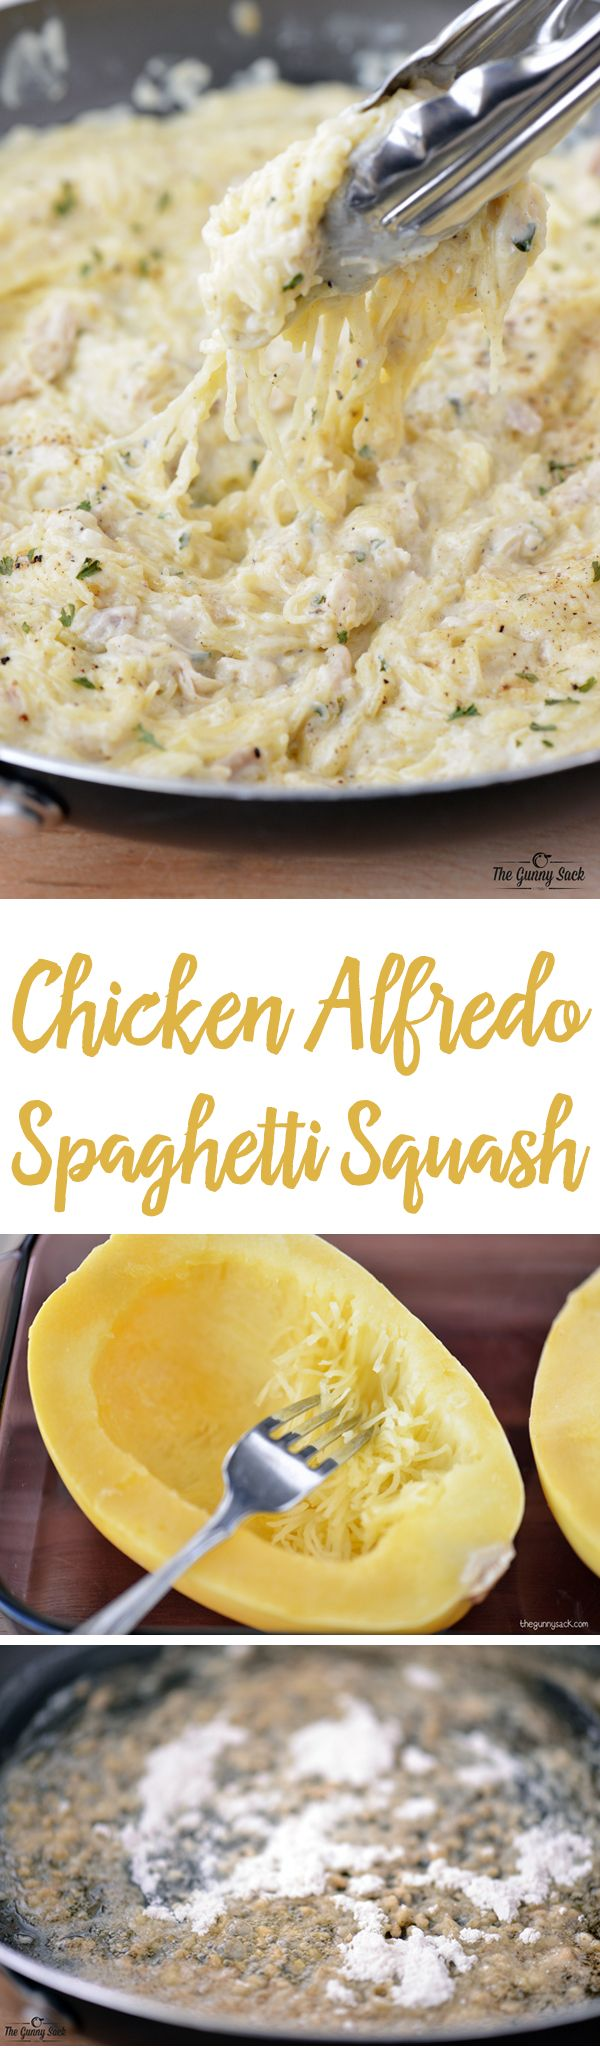 This Chicken Alfredo Spaghetti Squash recipe is low carb comfort food! This spaghetti squash recipe is quick and easy to make. It includes an alfredo sauce recipe make in the skillet. Try it for lunch or dinner!